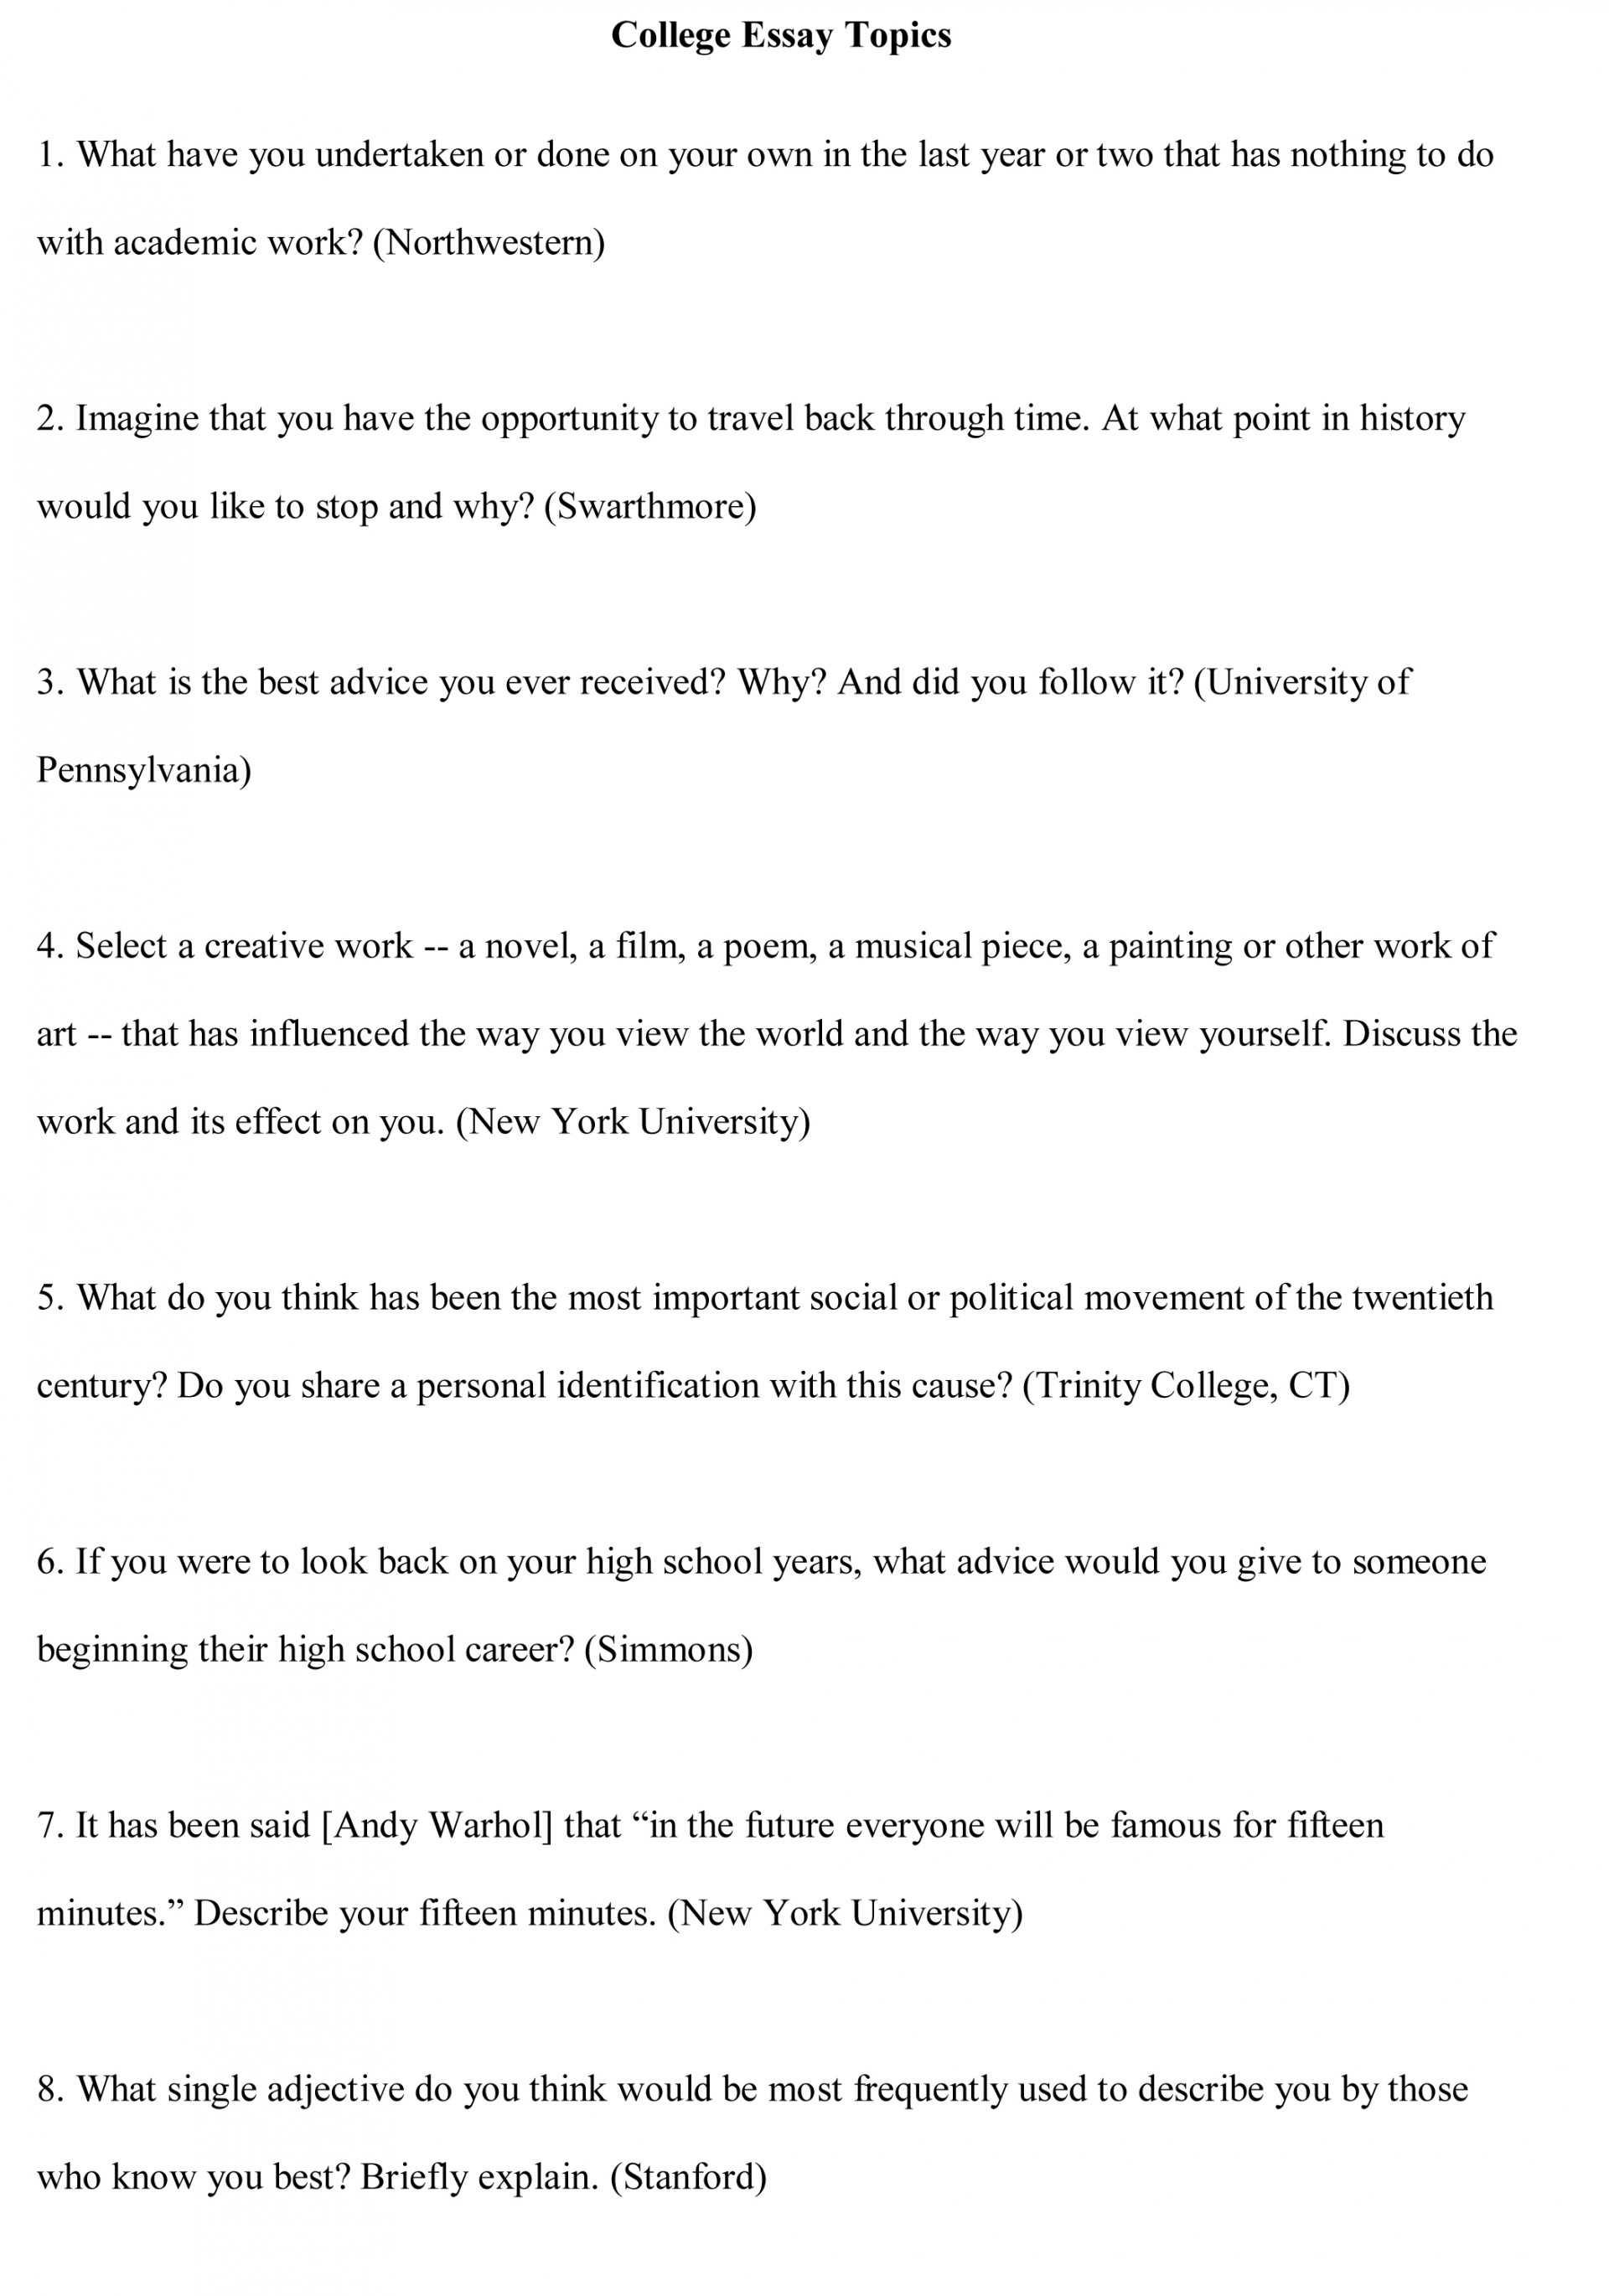 002 College Essay Topics Free Sample1cbu003d Top A B And C Argumentative Common To Avoid 1920